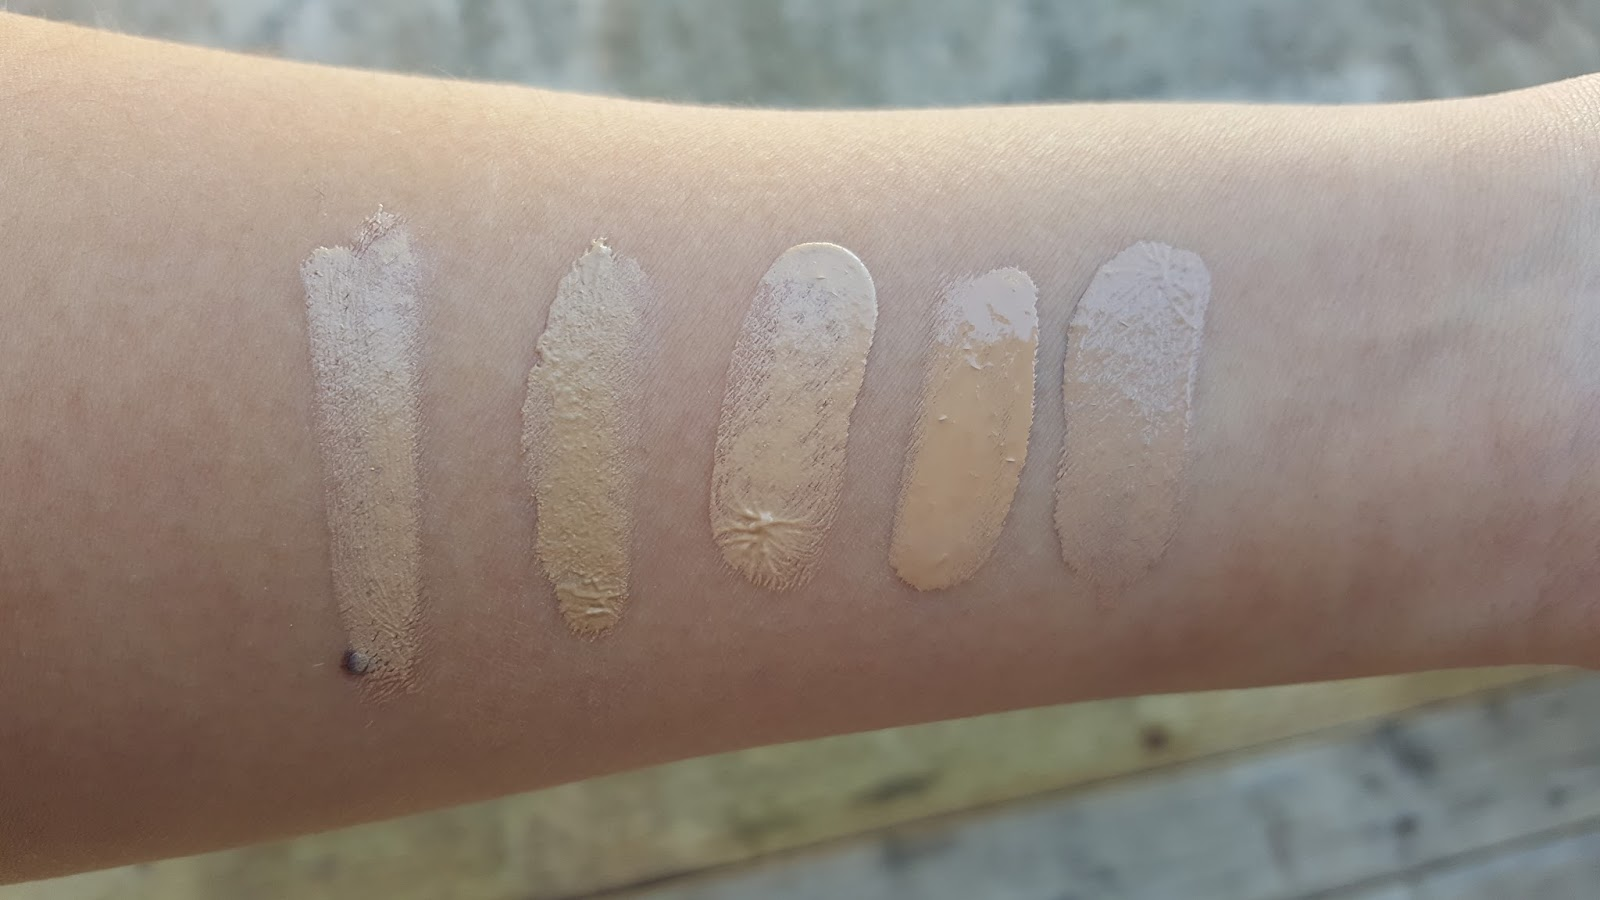 Illusion Hyaluronic Skin Tint by Hourglass #5